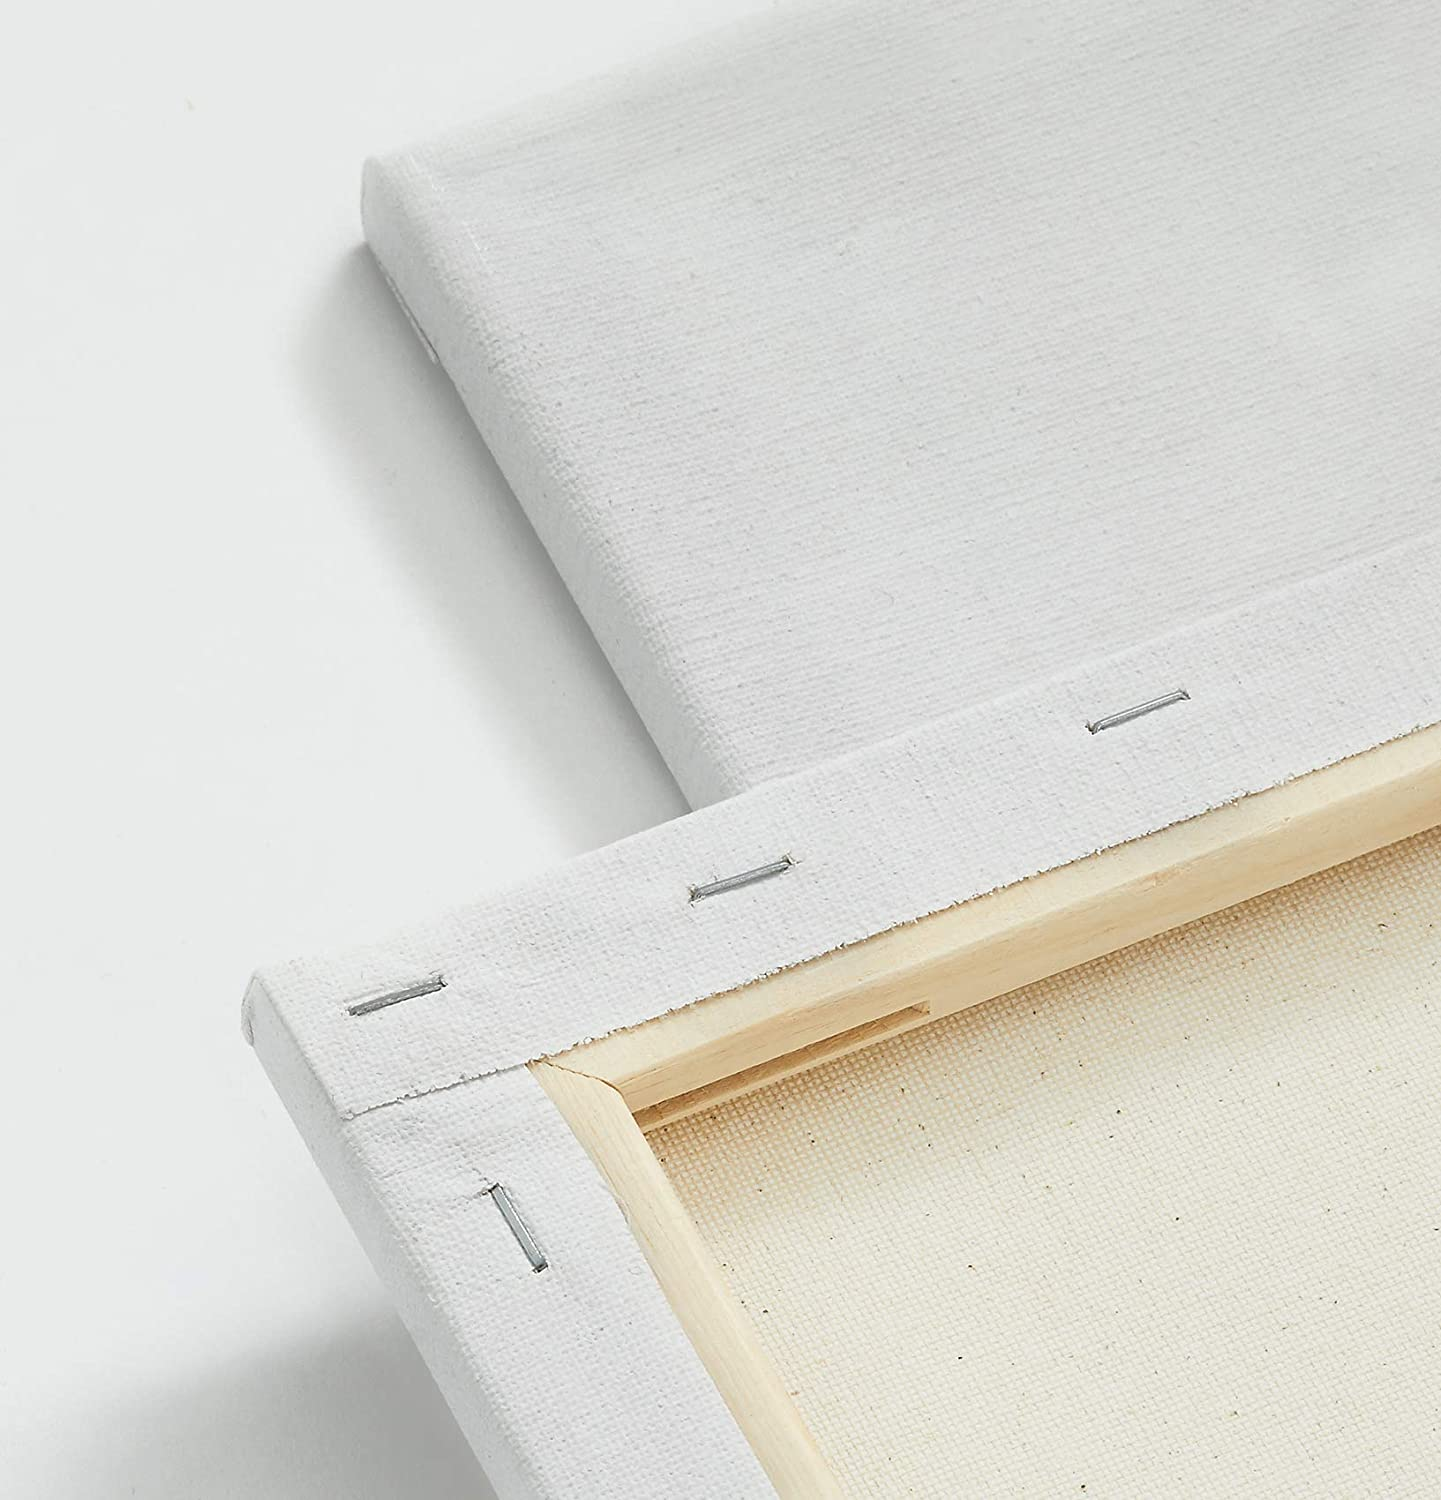 miniature 47 - Americanflat Stretched Canvas in White 100% Cotton Wooden Frames & Acid Free